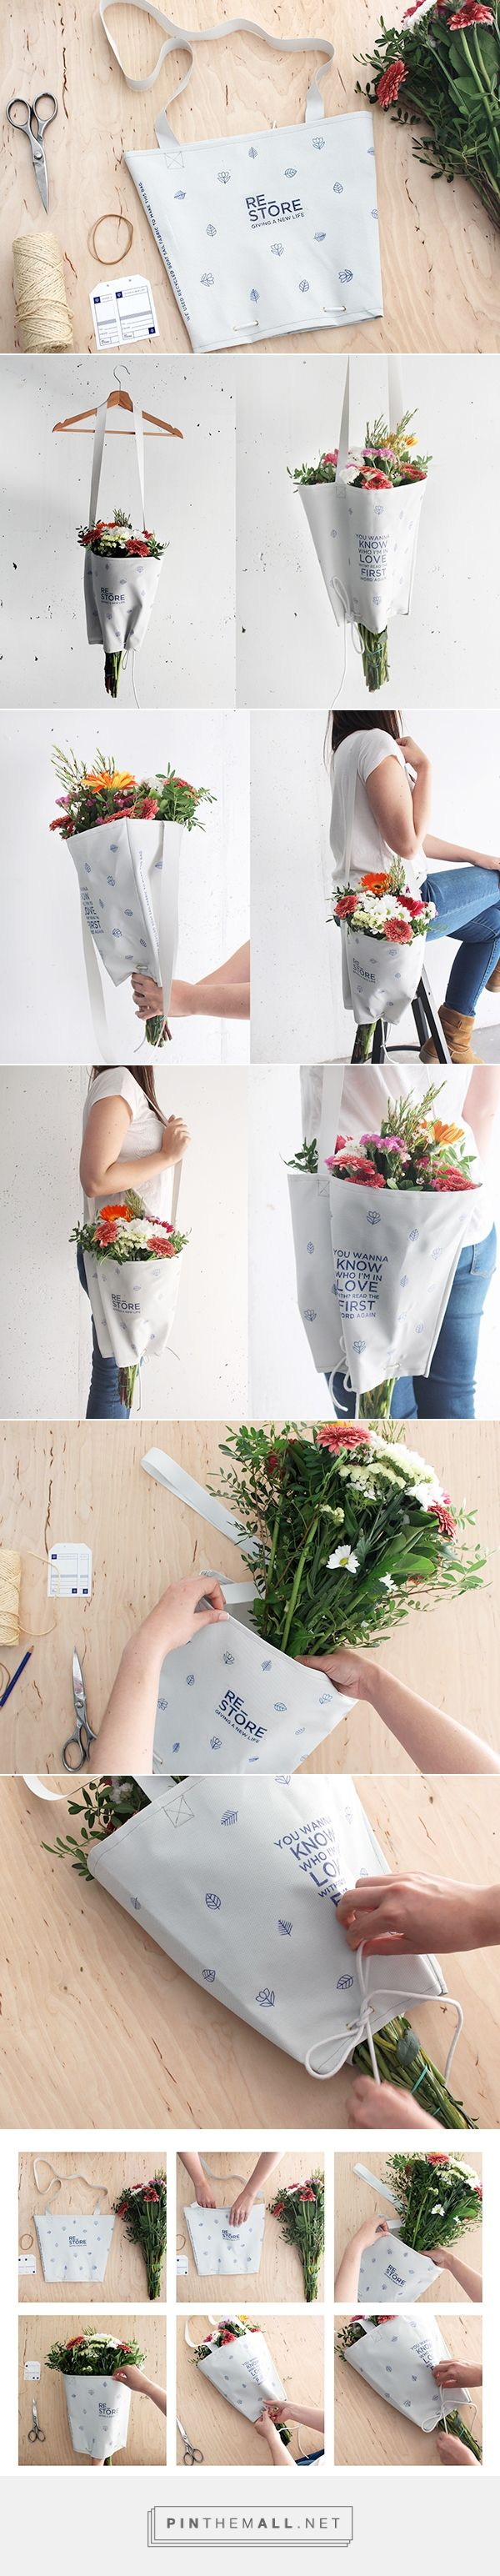 RE_STORE // Ecofriendly packaging design that reduces environmental impact.